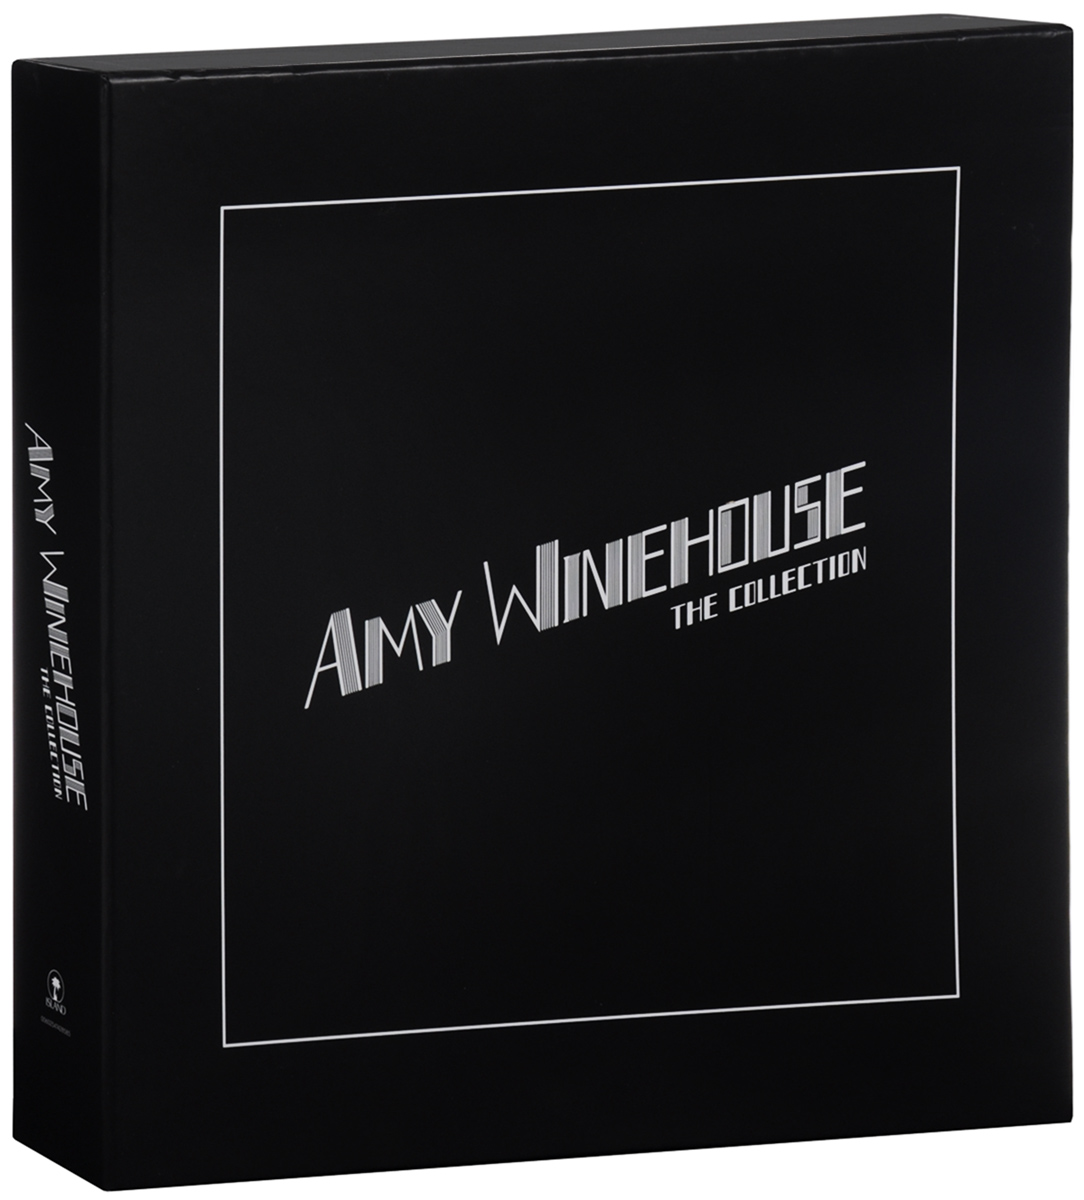 Эми Вайнхаус Amy Winehouse. The Collection. Deluxe Vinyl Boxset (8 LP) amy winehouse amy winehouse back to black eu